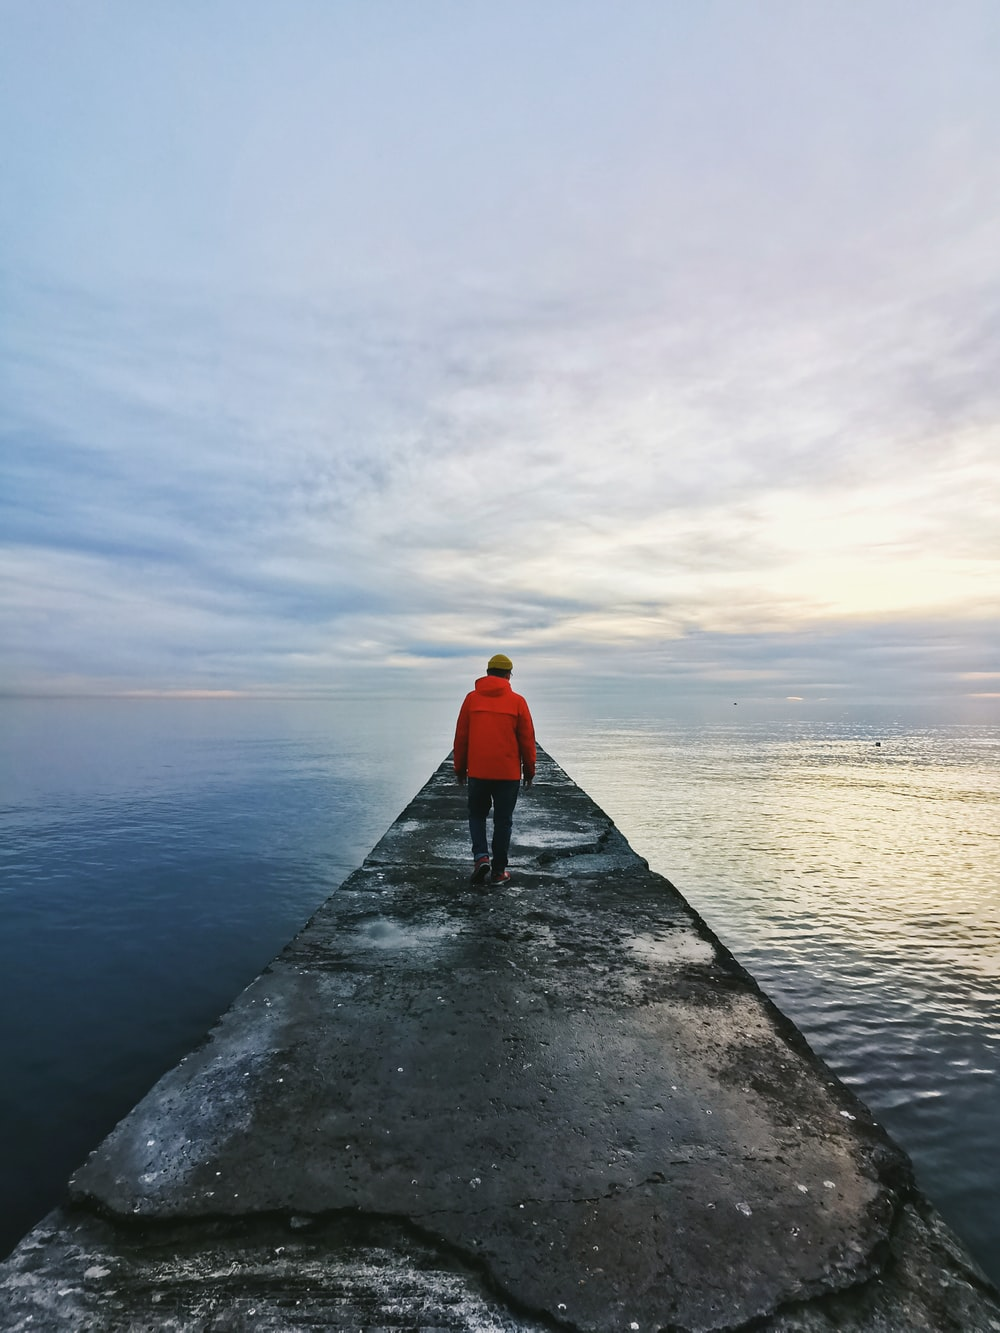 man in red hoodie standing on dock near body of water during daytime